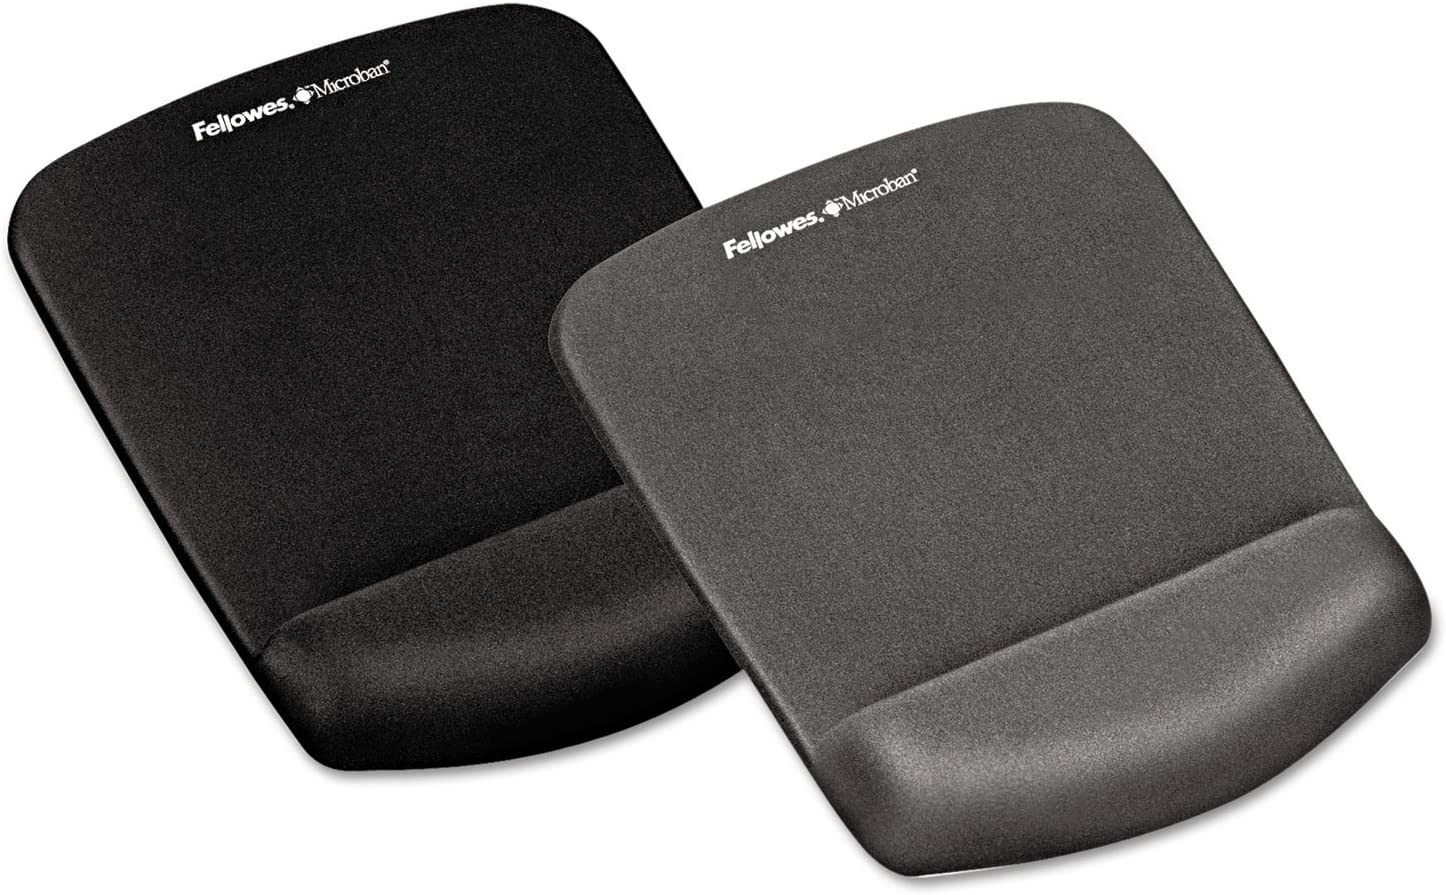 Fellowes 9252201 Microban Wrist Rest//Mouse Pad Graphite